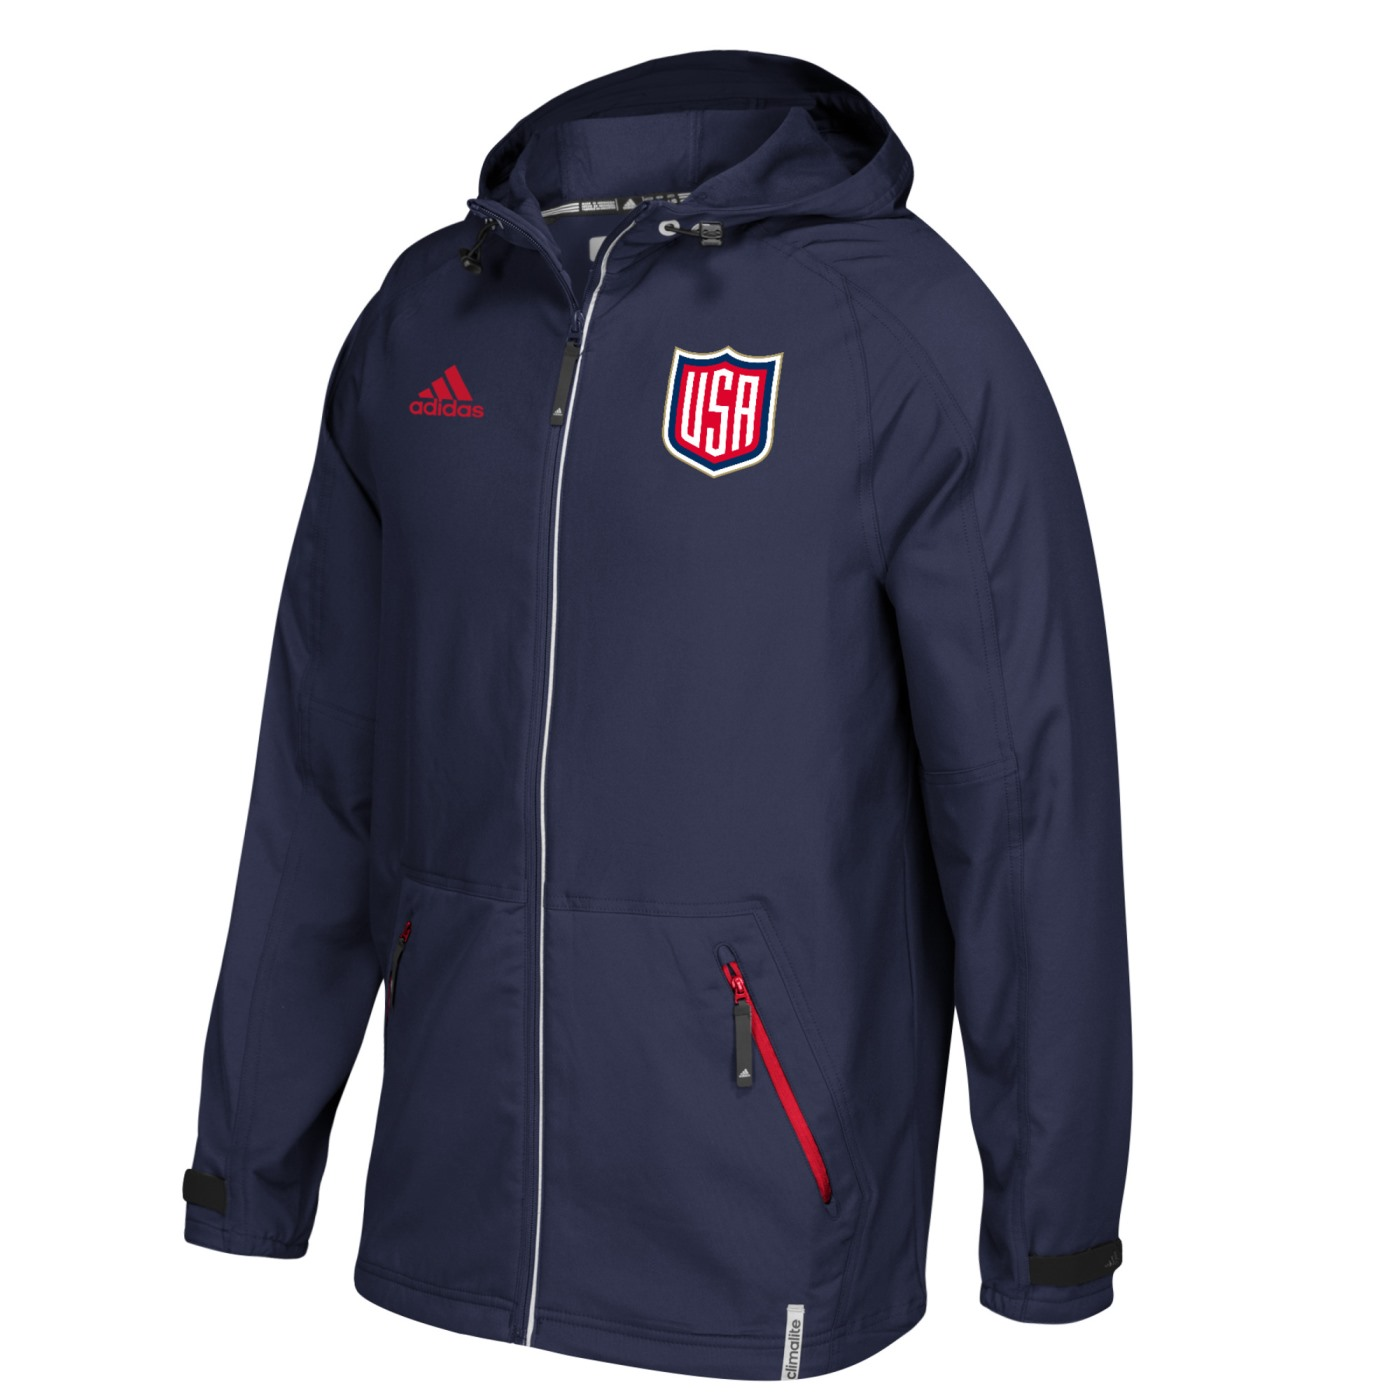 Team USA 2016 World Cup of Hockey Adidas Men's Full Zip Woven Hooded Jacket